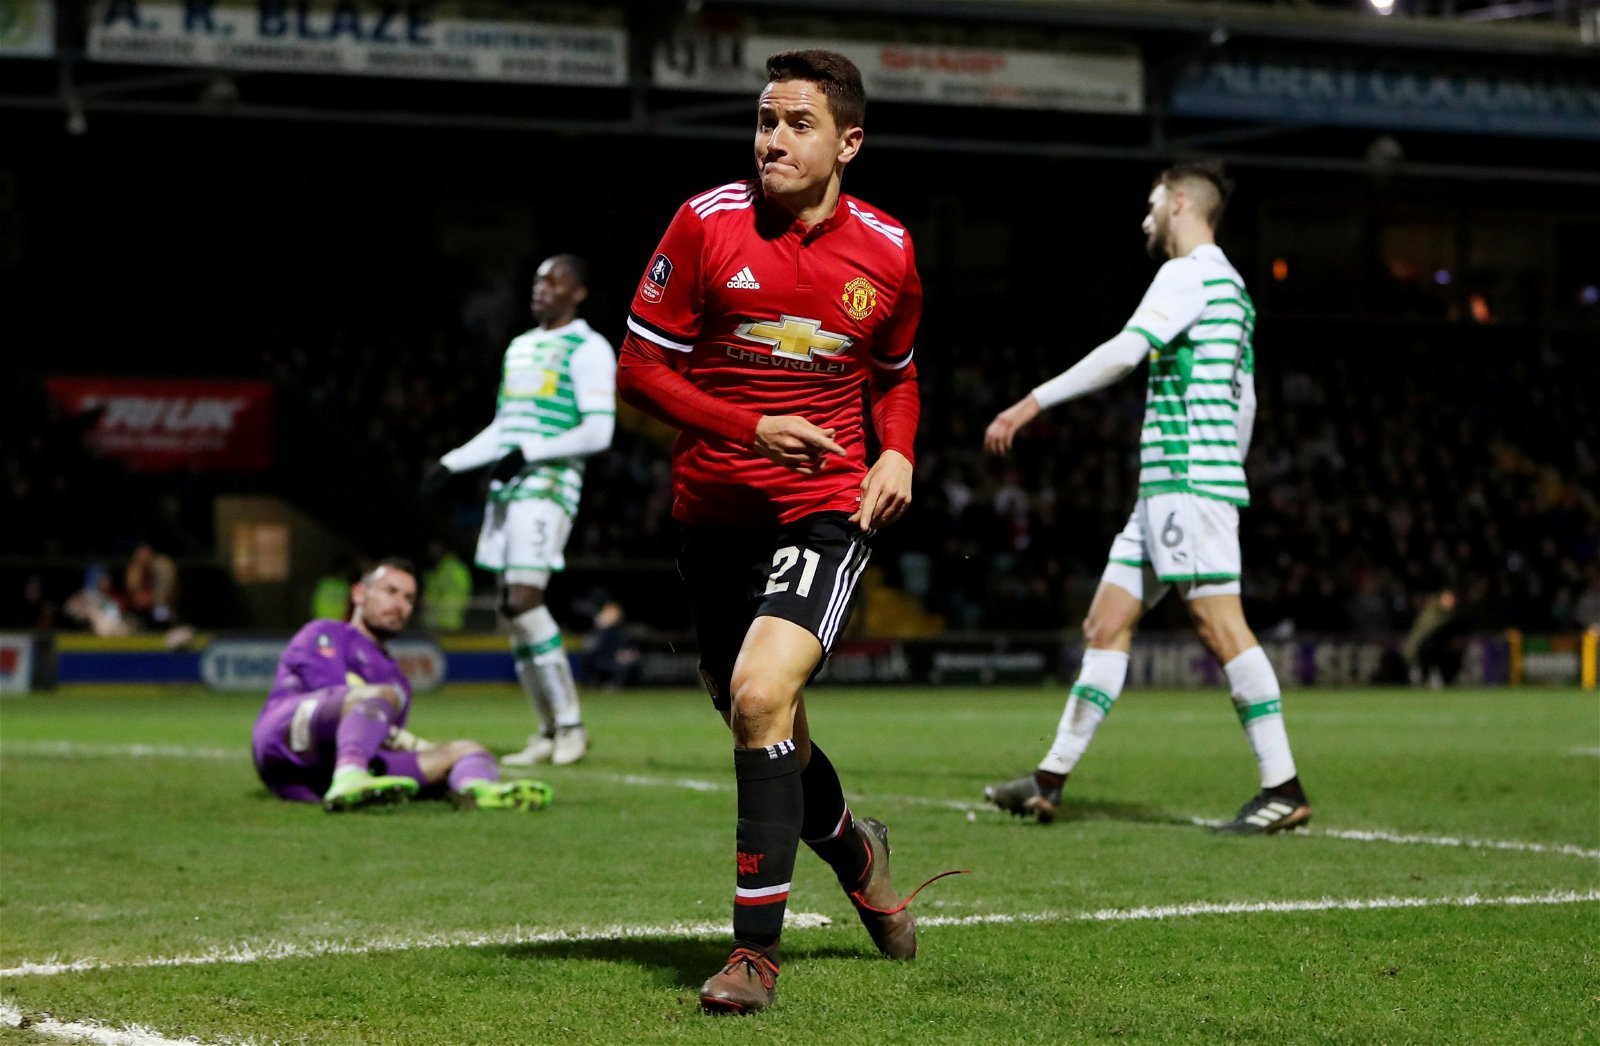 Ander Herrera's demise shows Jose Mourinho is a bad fit for United